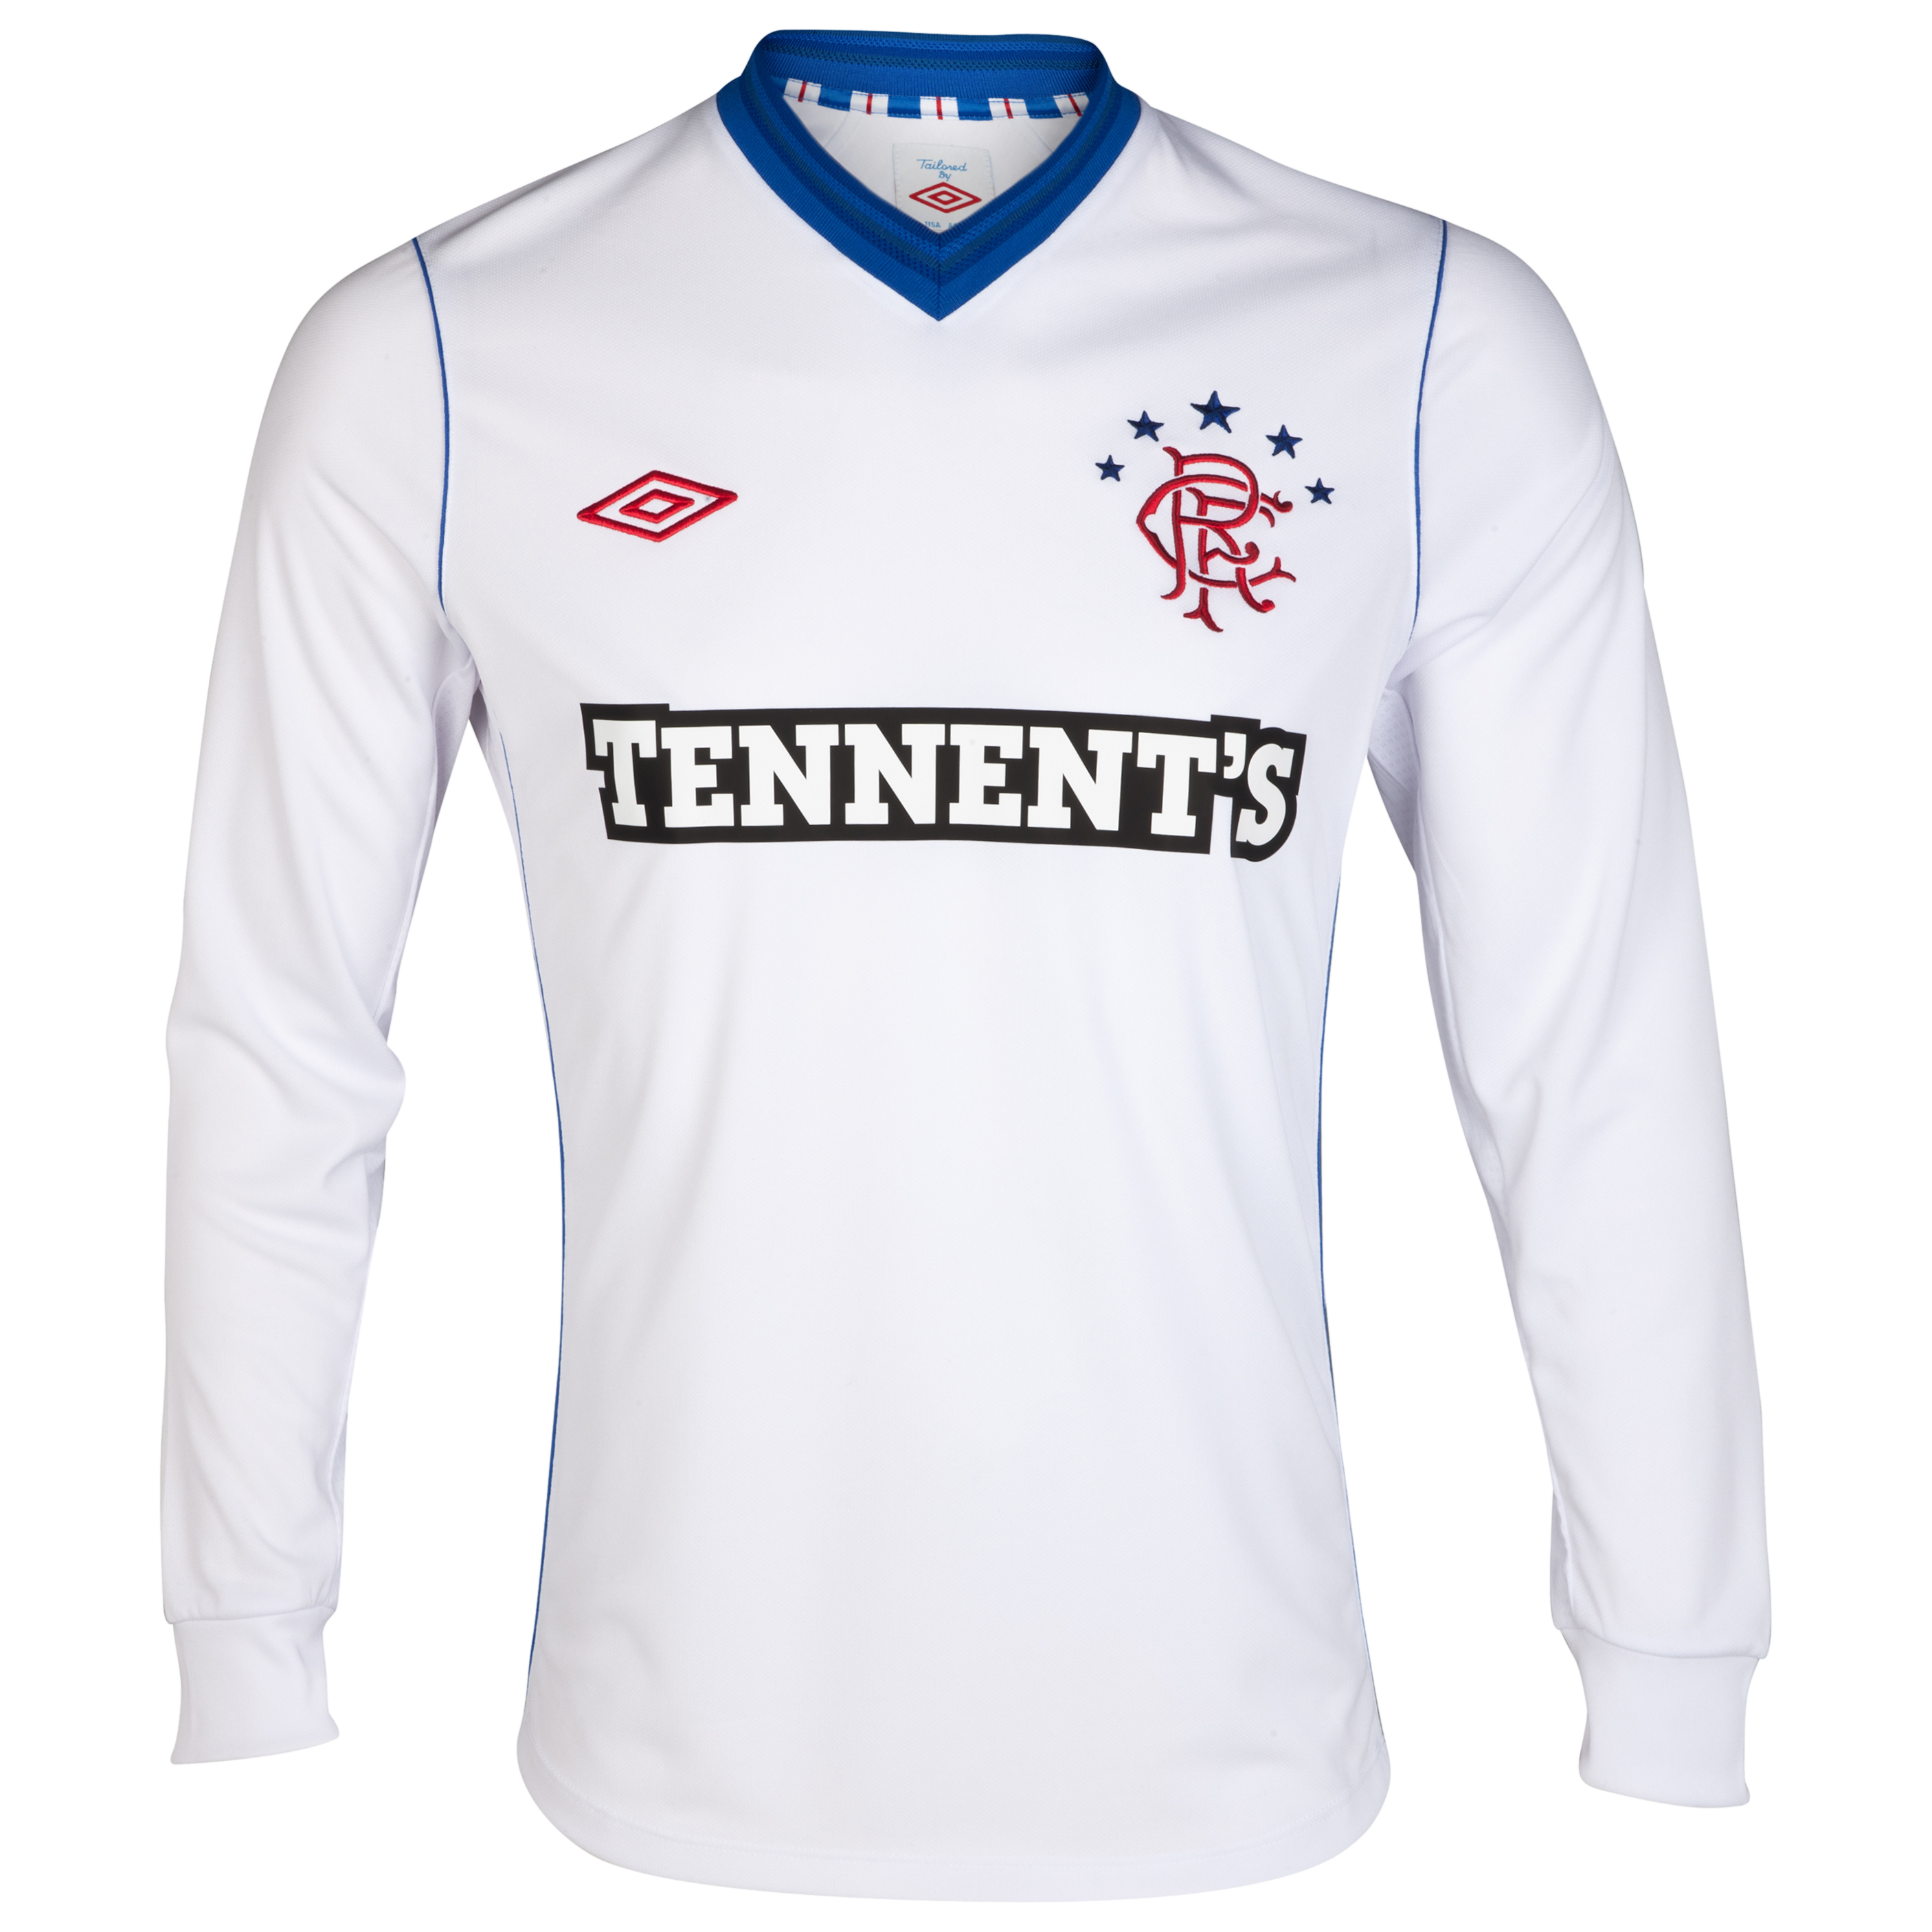 Glasgow Rangers Away Shirt 2012/13 - Long Sleeve